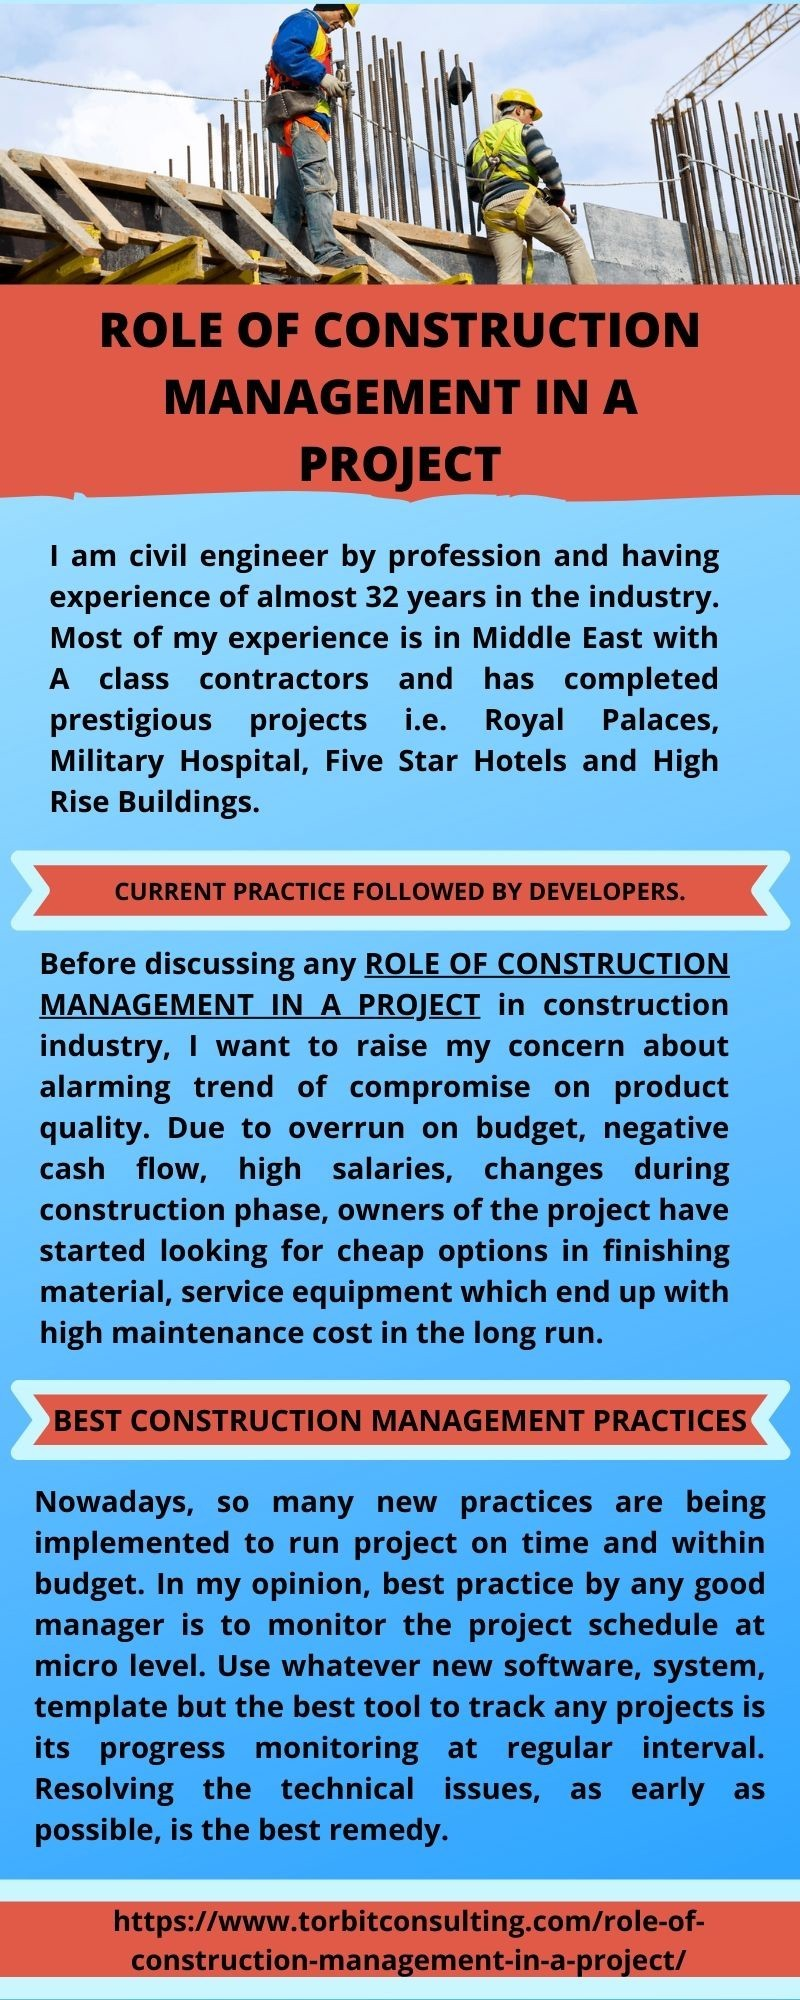 Role of Construction Management in a Project